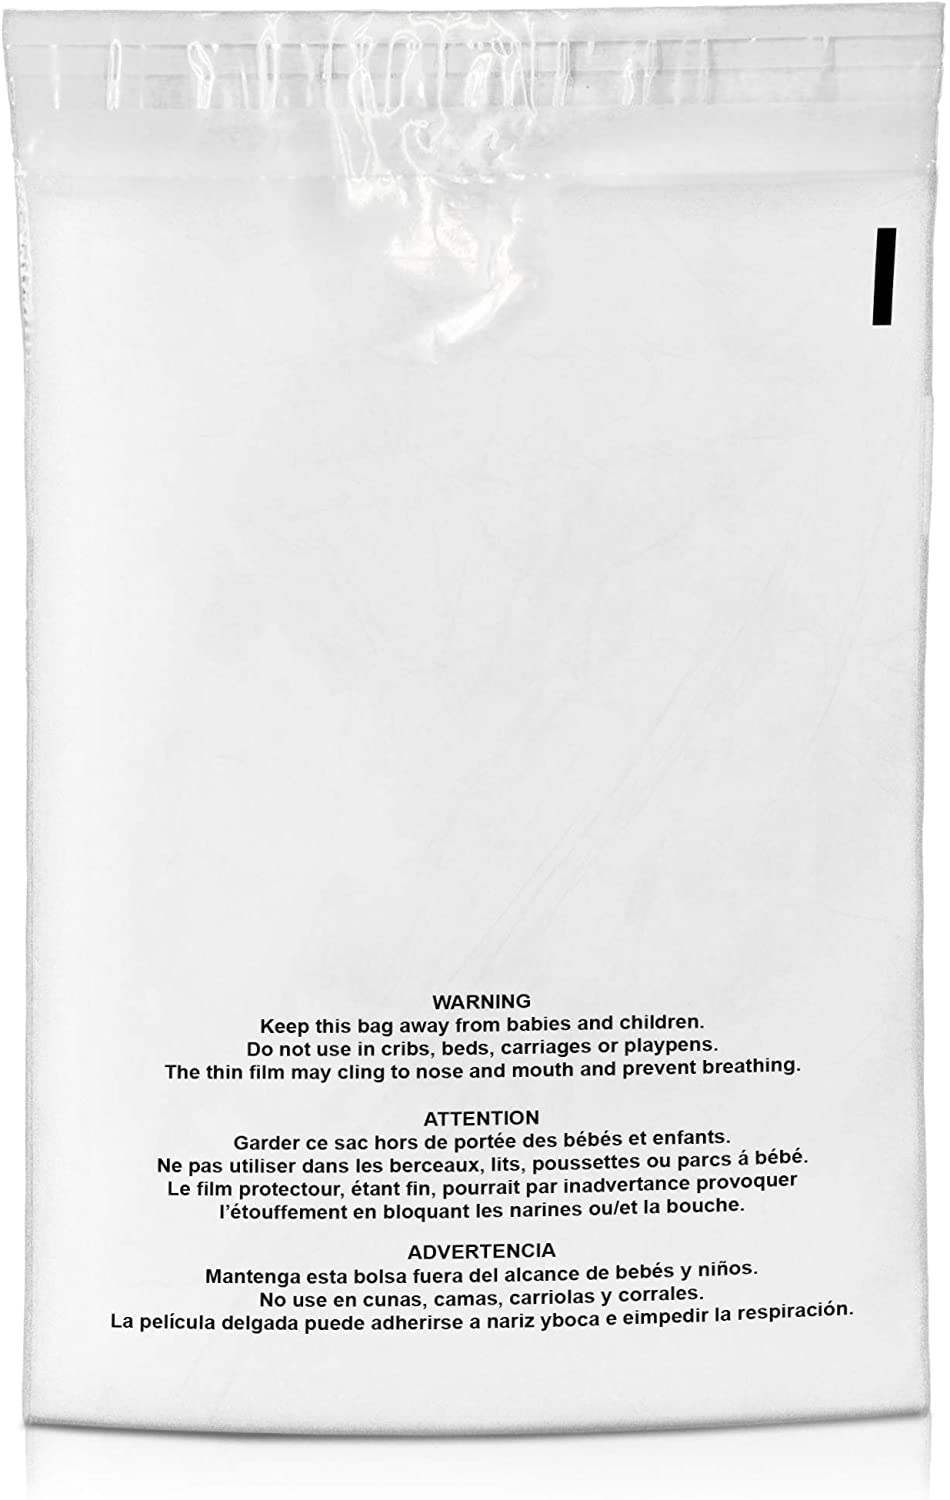 Shop4Mailers 9 x 12 Suffocation Warning Clear Plastic Self Seal Poly Bags 1.5 Mil (500 Pack)